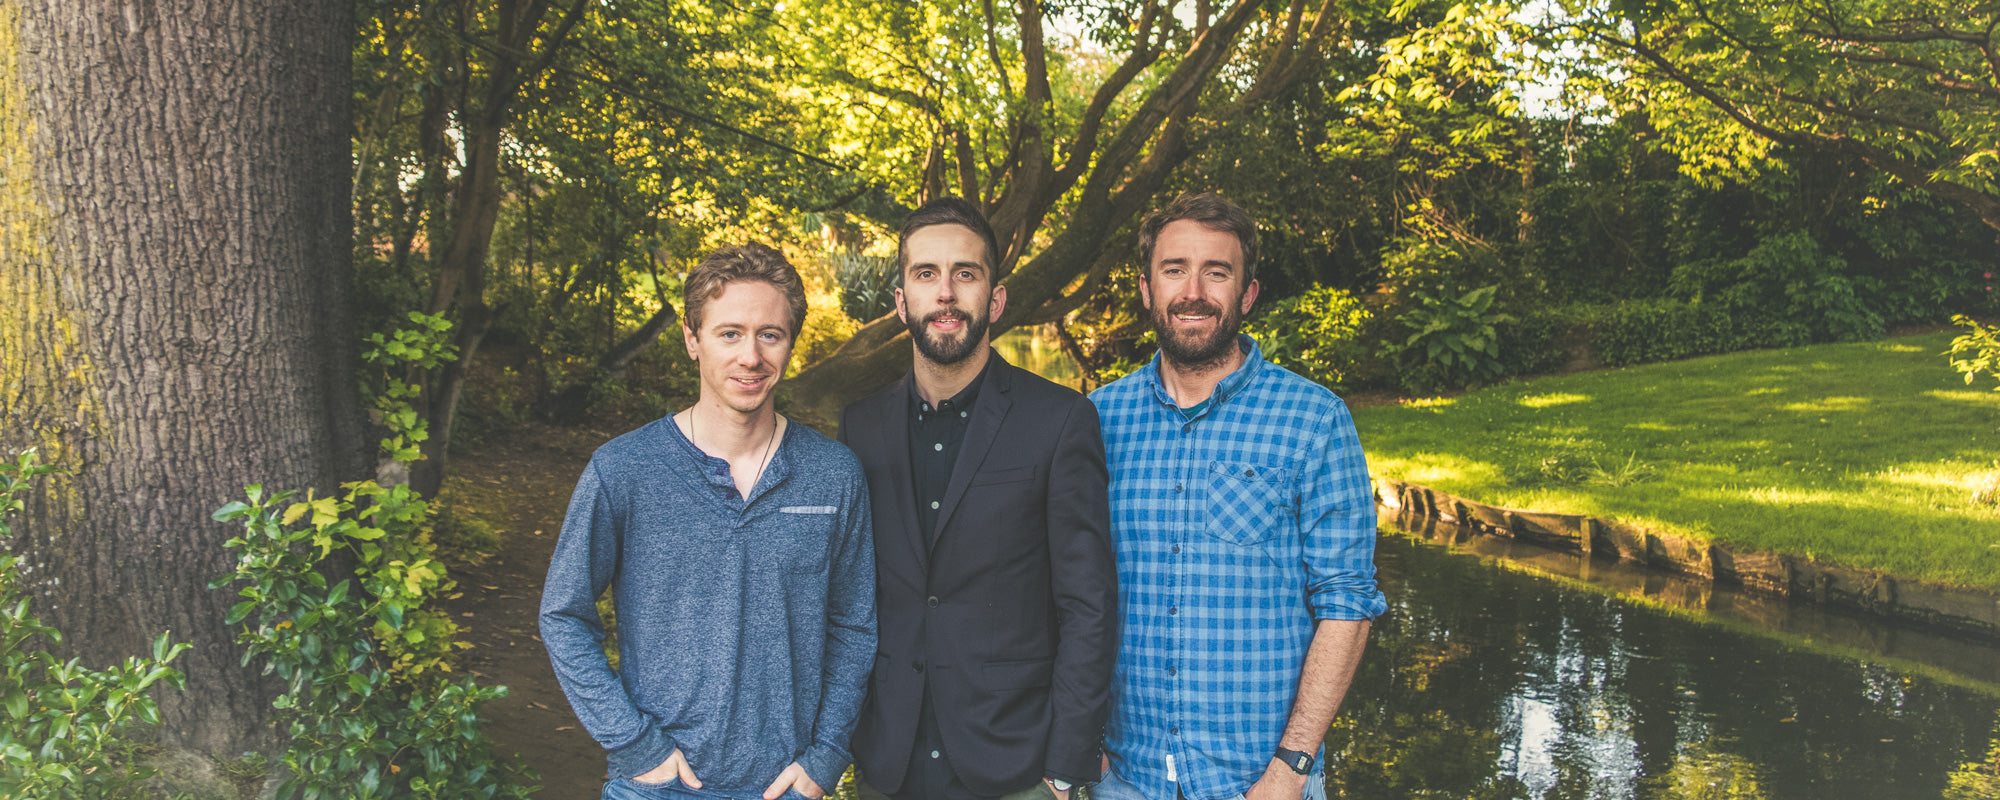 Trump Forest co-founders, from left: Jeff Willis, Adrien Taylor, Dan Price.